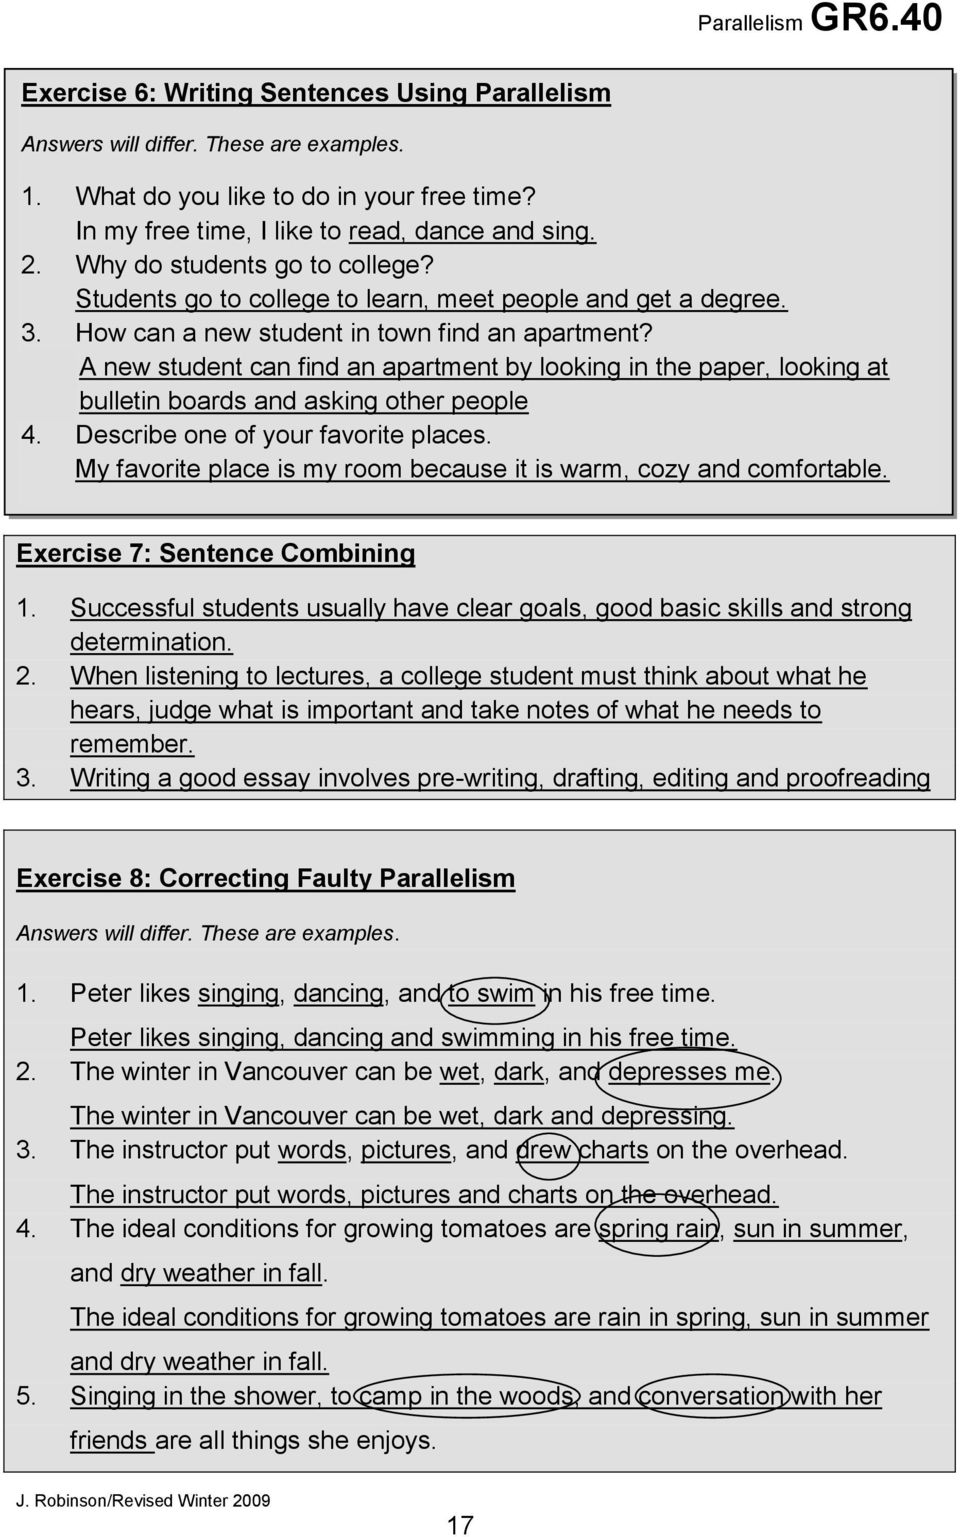 describing people essay learning centre parallelism pdf write  learning centre parallelism pdf a new student can an apartment by looking in the paper looking write about a person you admire essay